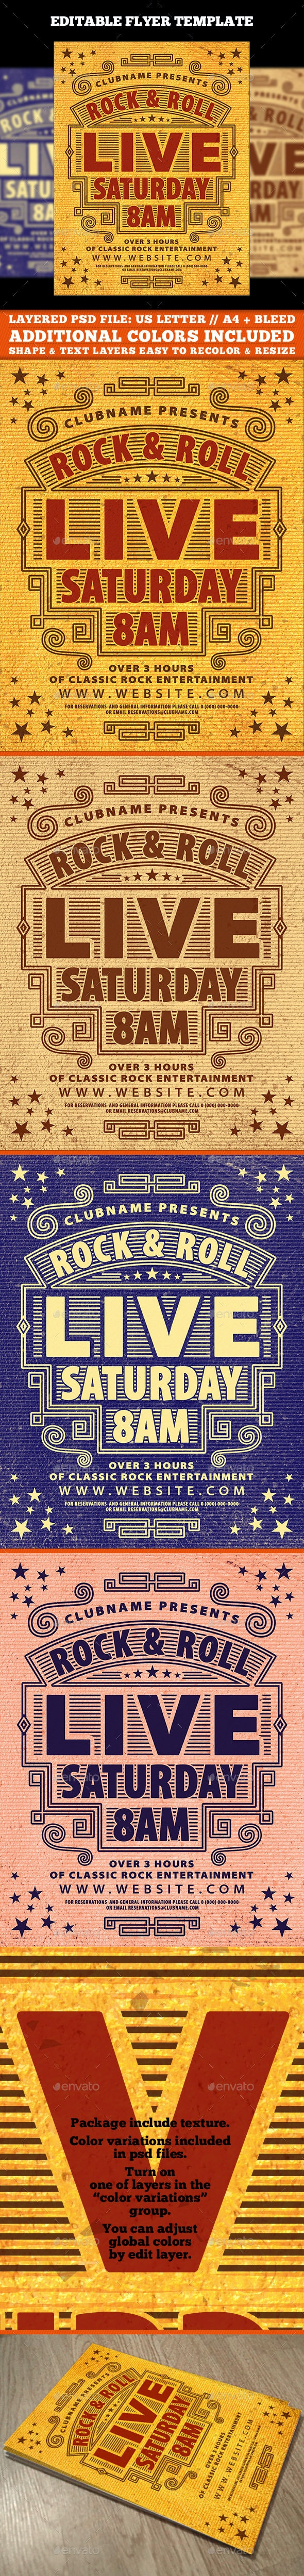 Vintage Music Flyer Template - Events Flyers